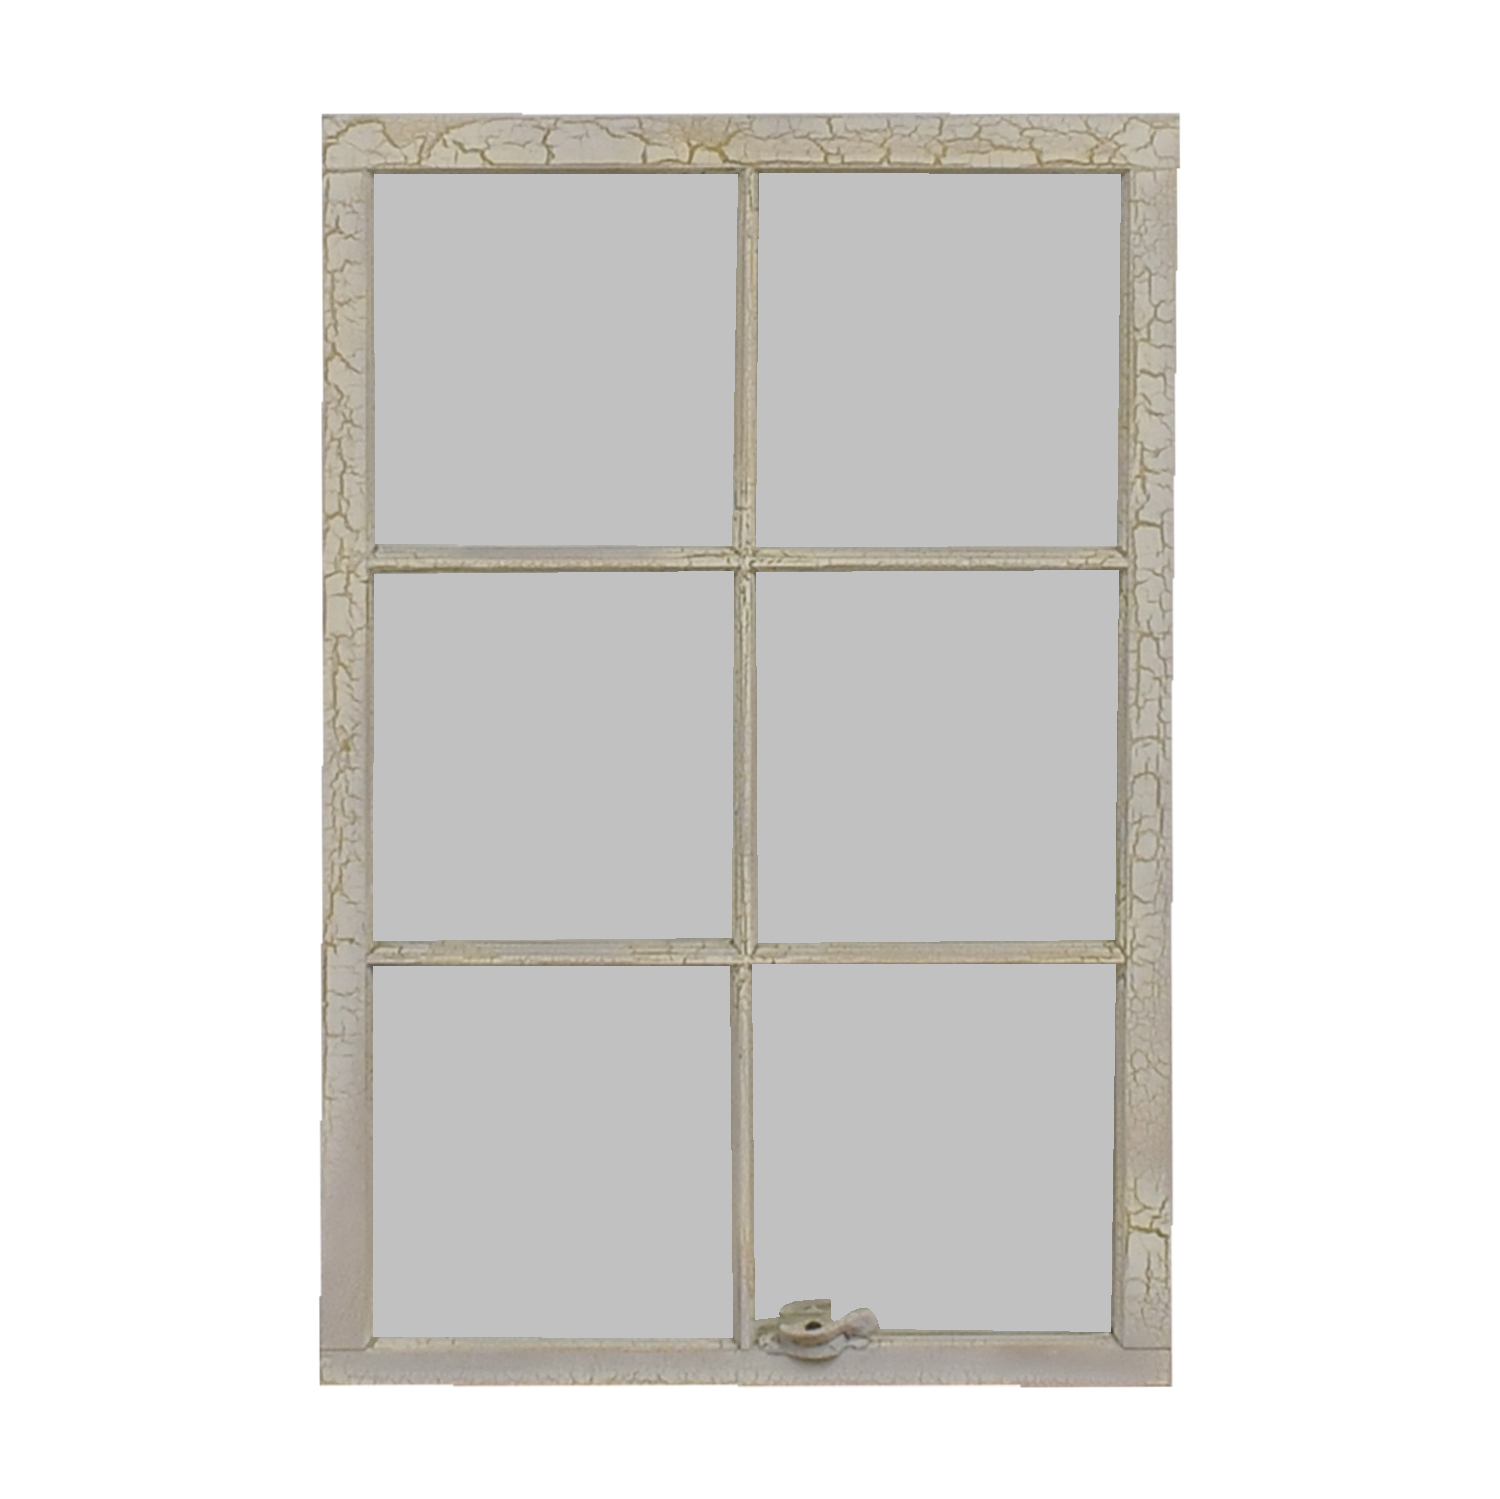 Aspire Window Wall Mirror sale